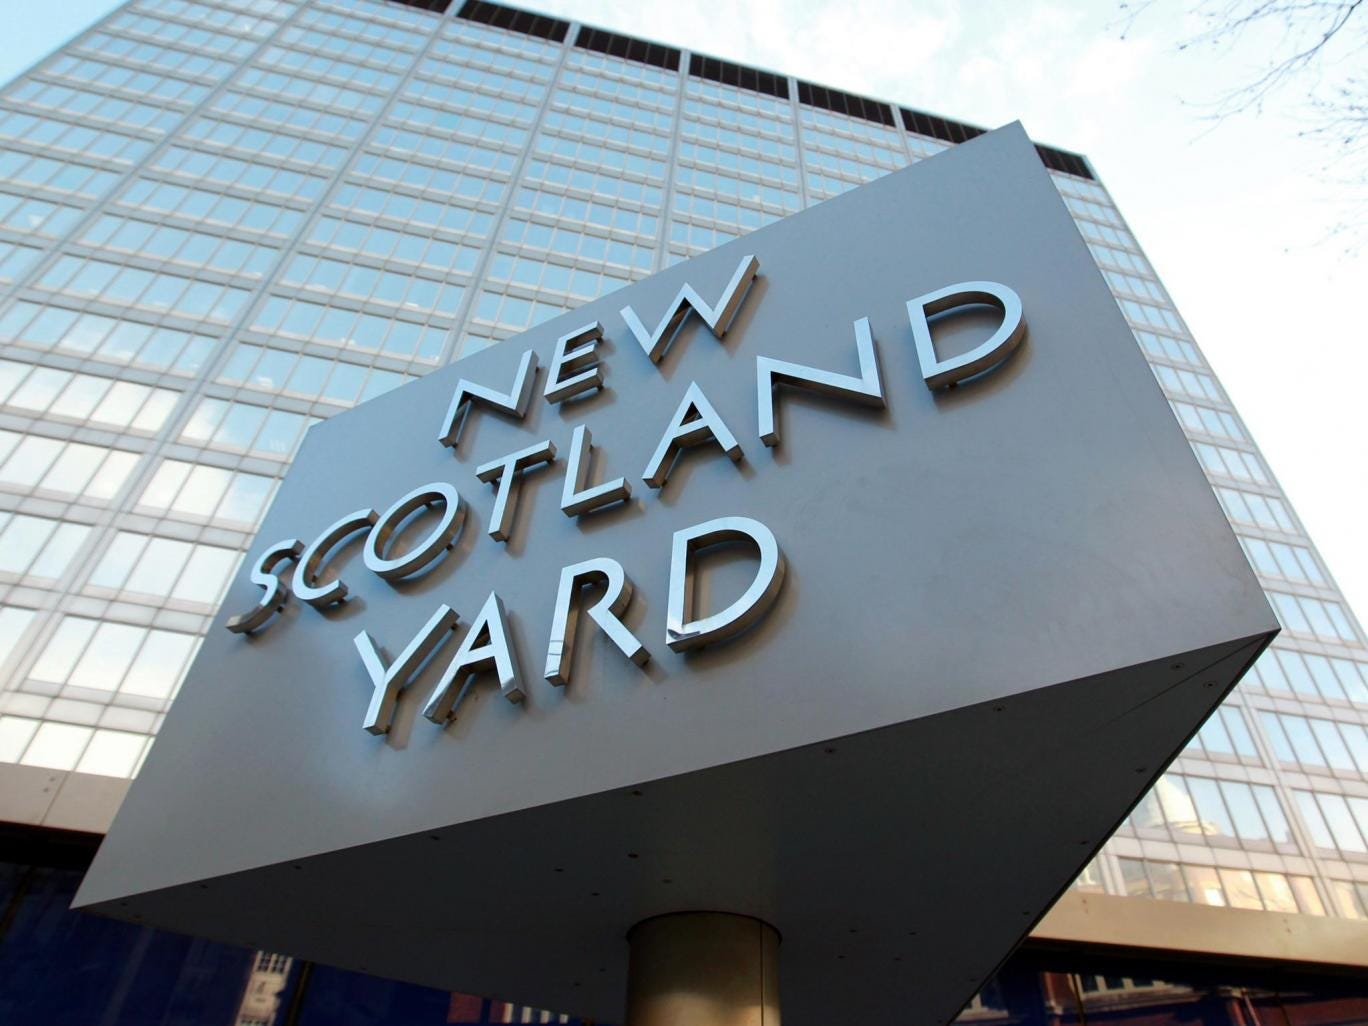 Information was unlawfully stored in Metropolitan Police vaults for 20 years